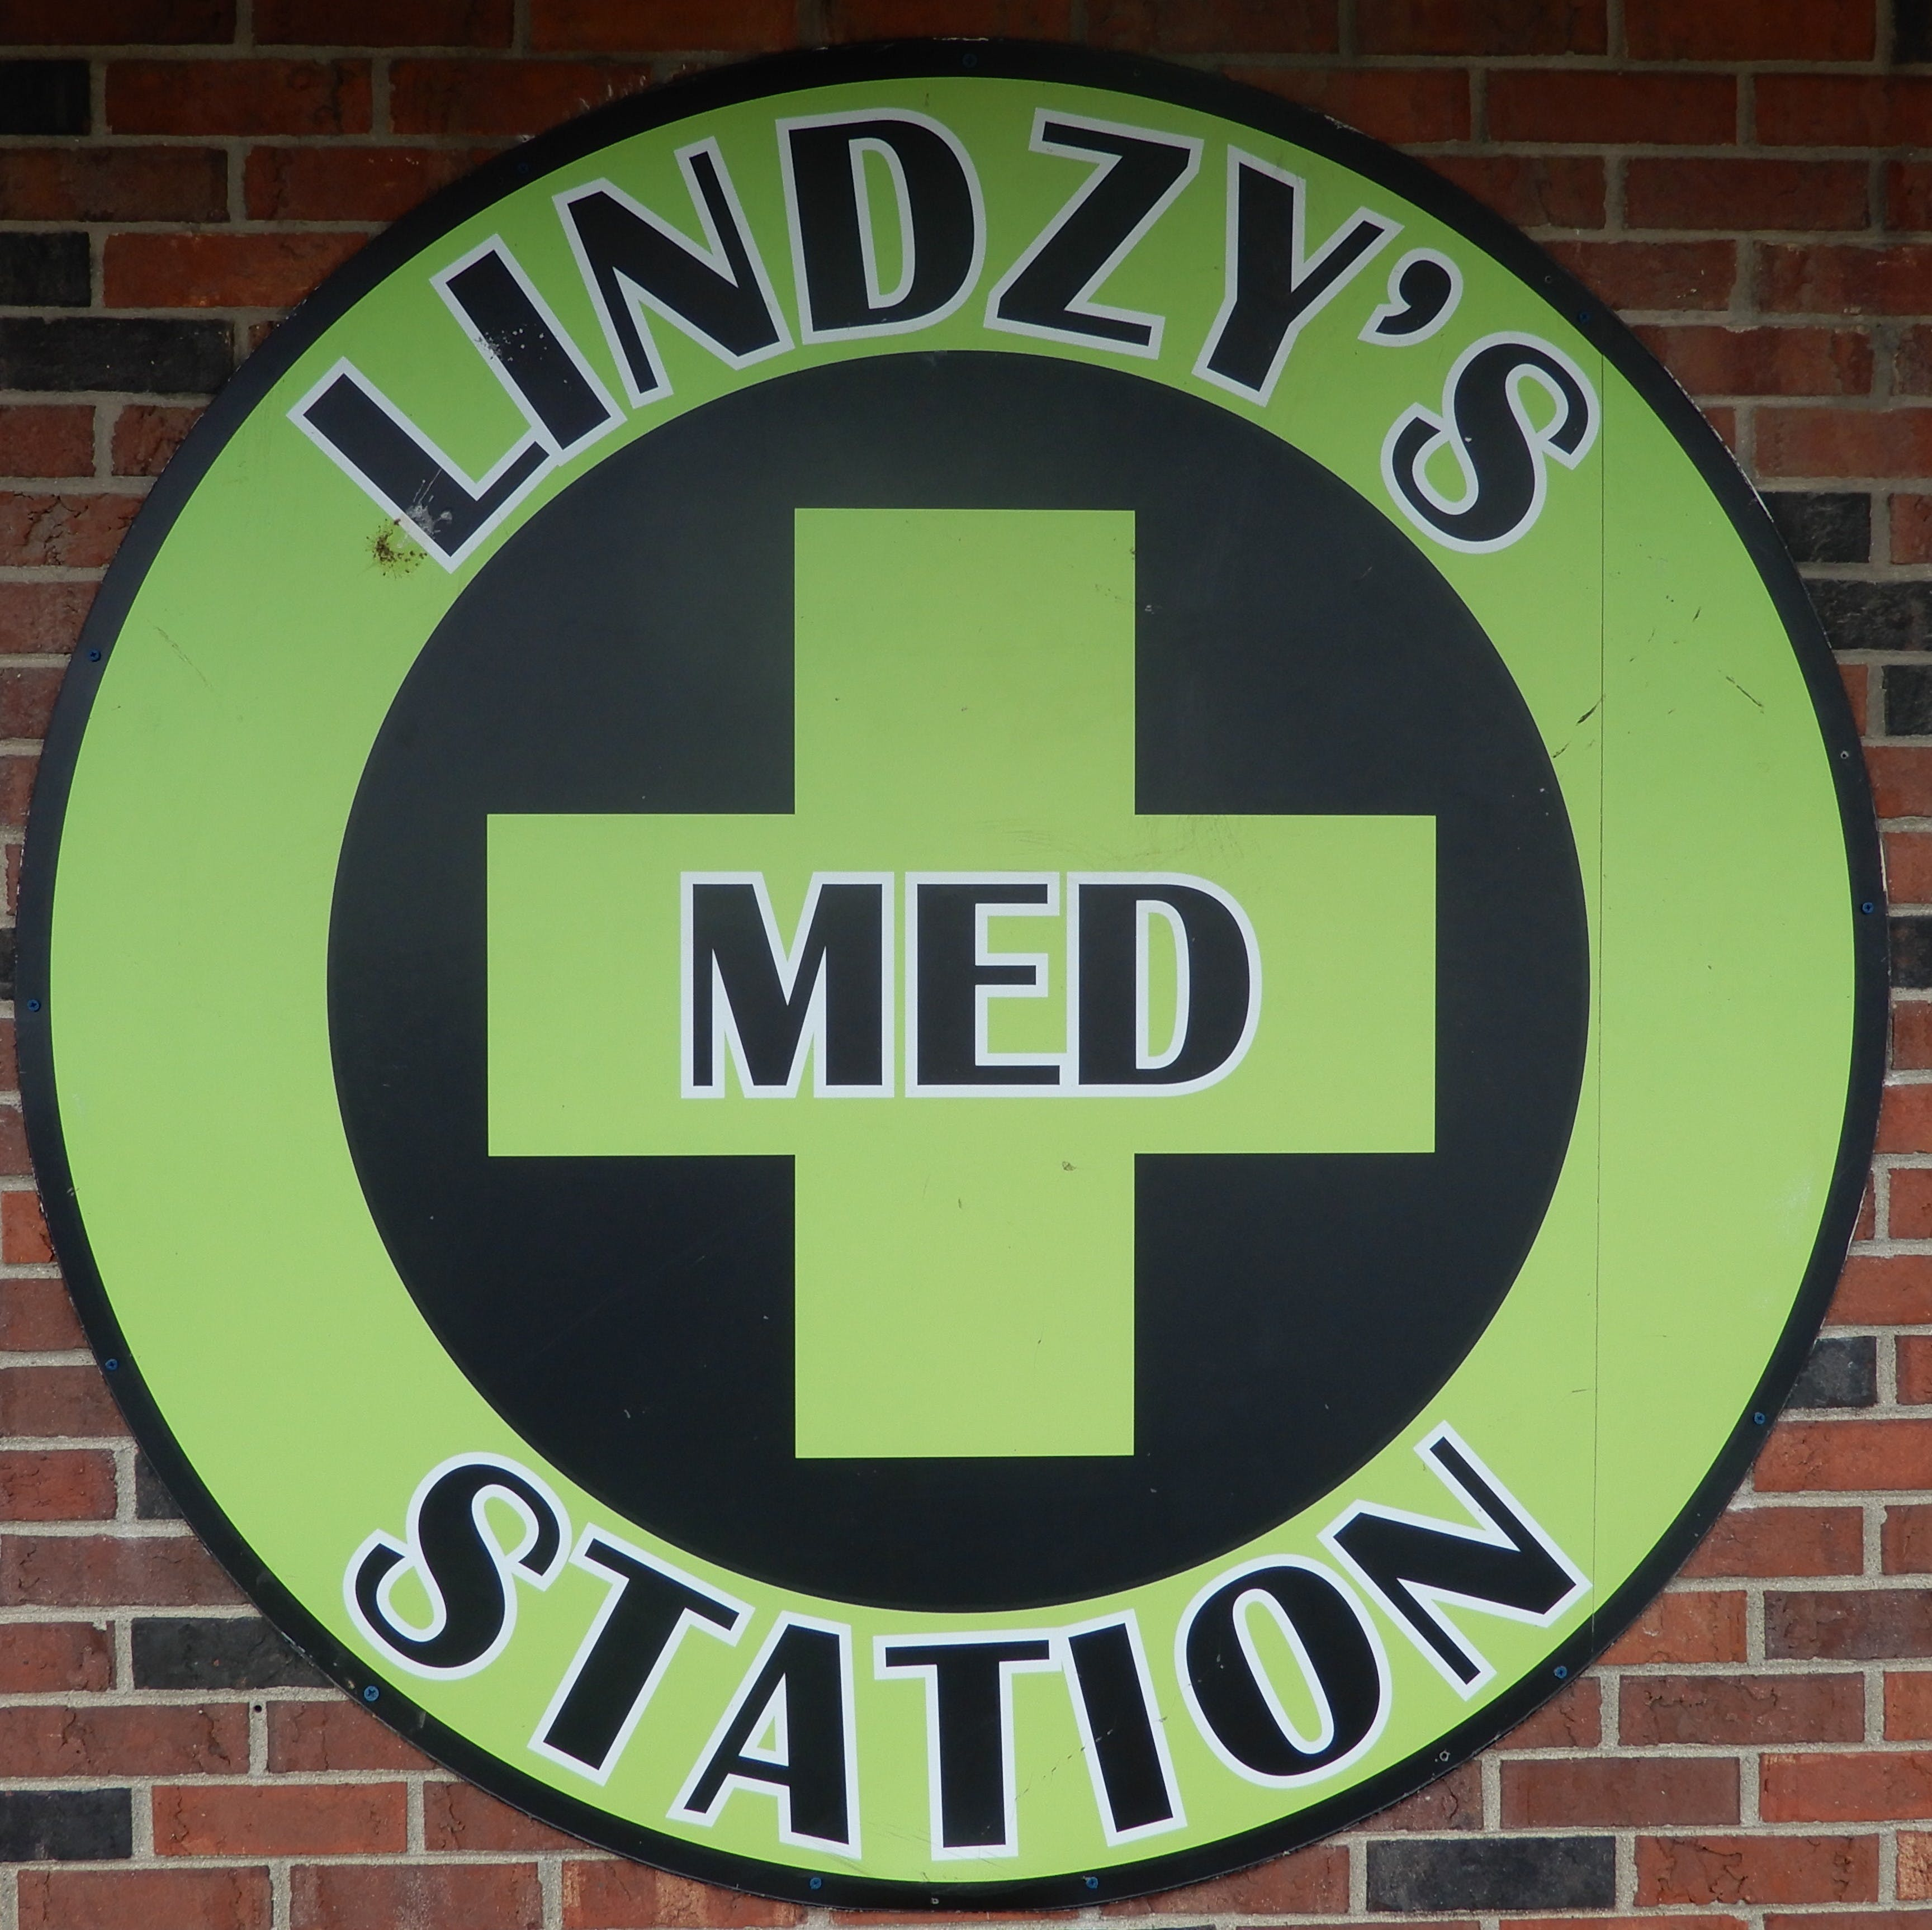 Lindzy's Med Supply Station | Store